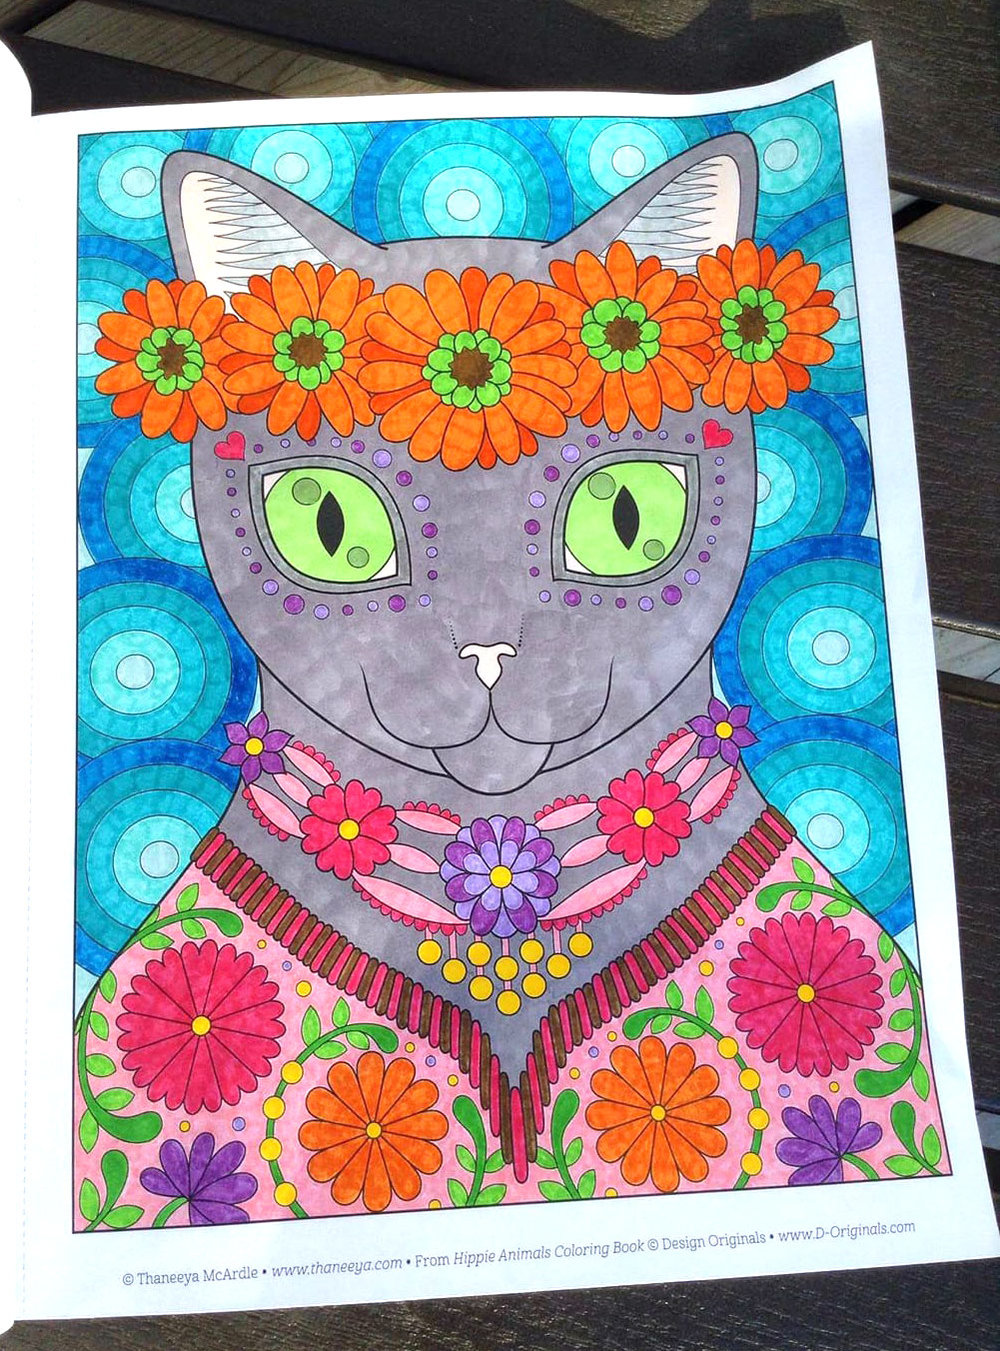 Cat Coloring Page From Thaneeya McArdles Hippie Animals Book Colored In By Tammy M